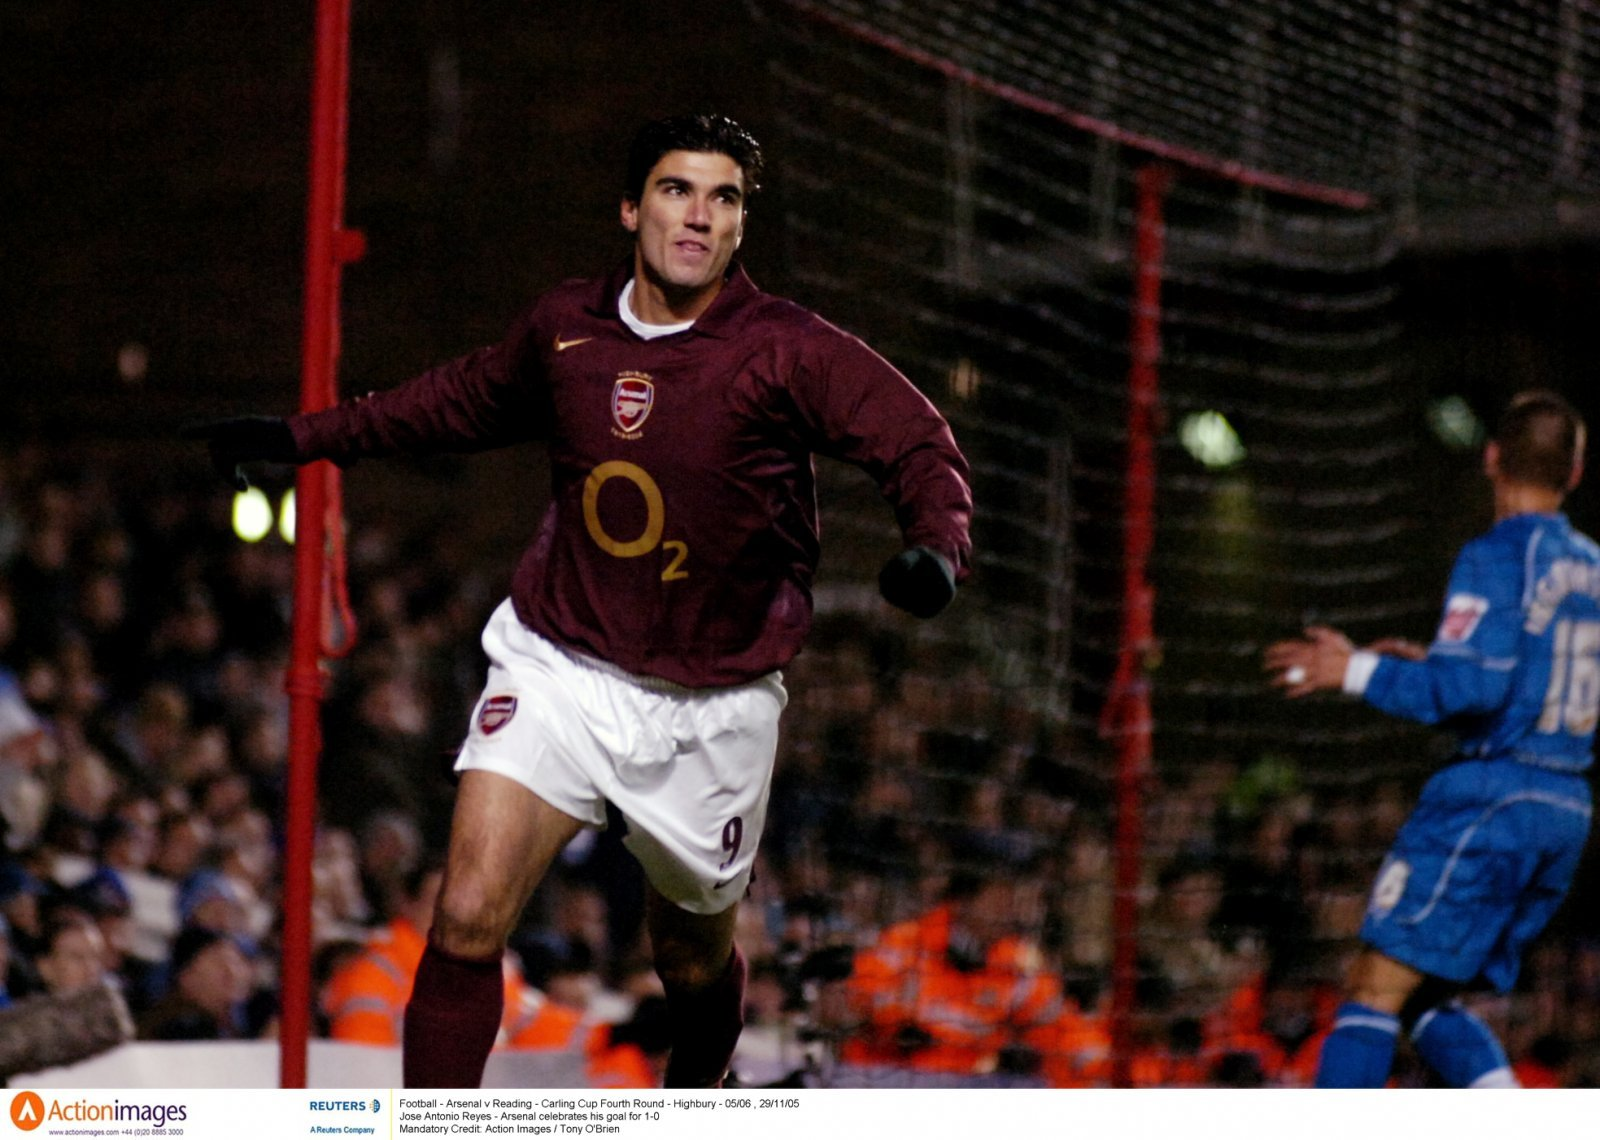 Look at him now: Jose Antonio Reyes and Arsenal